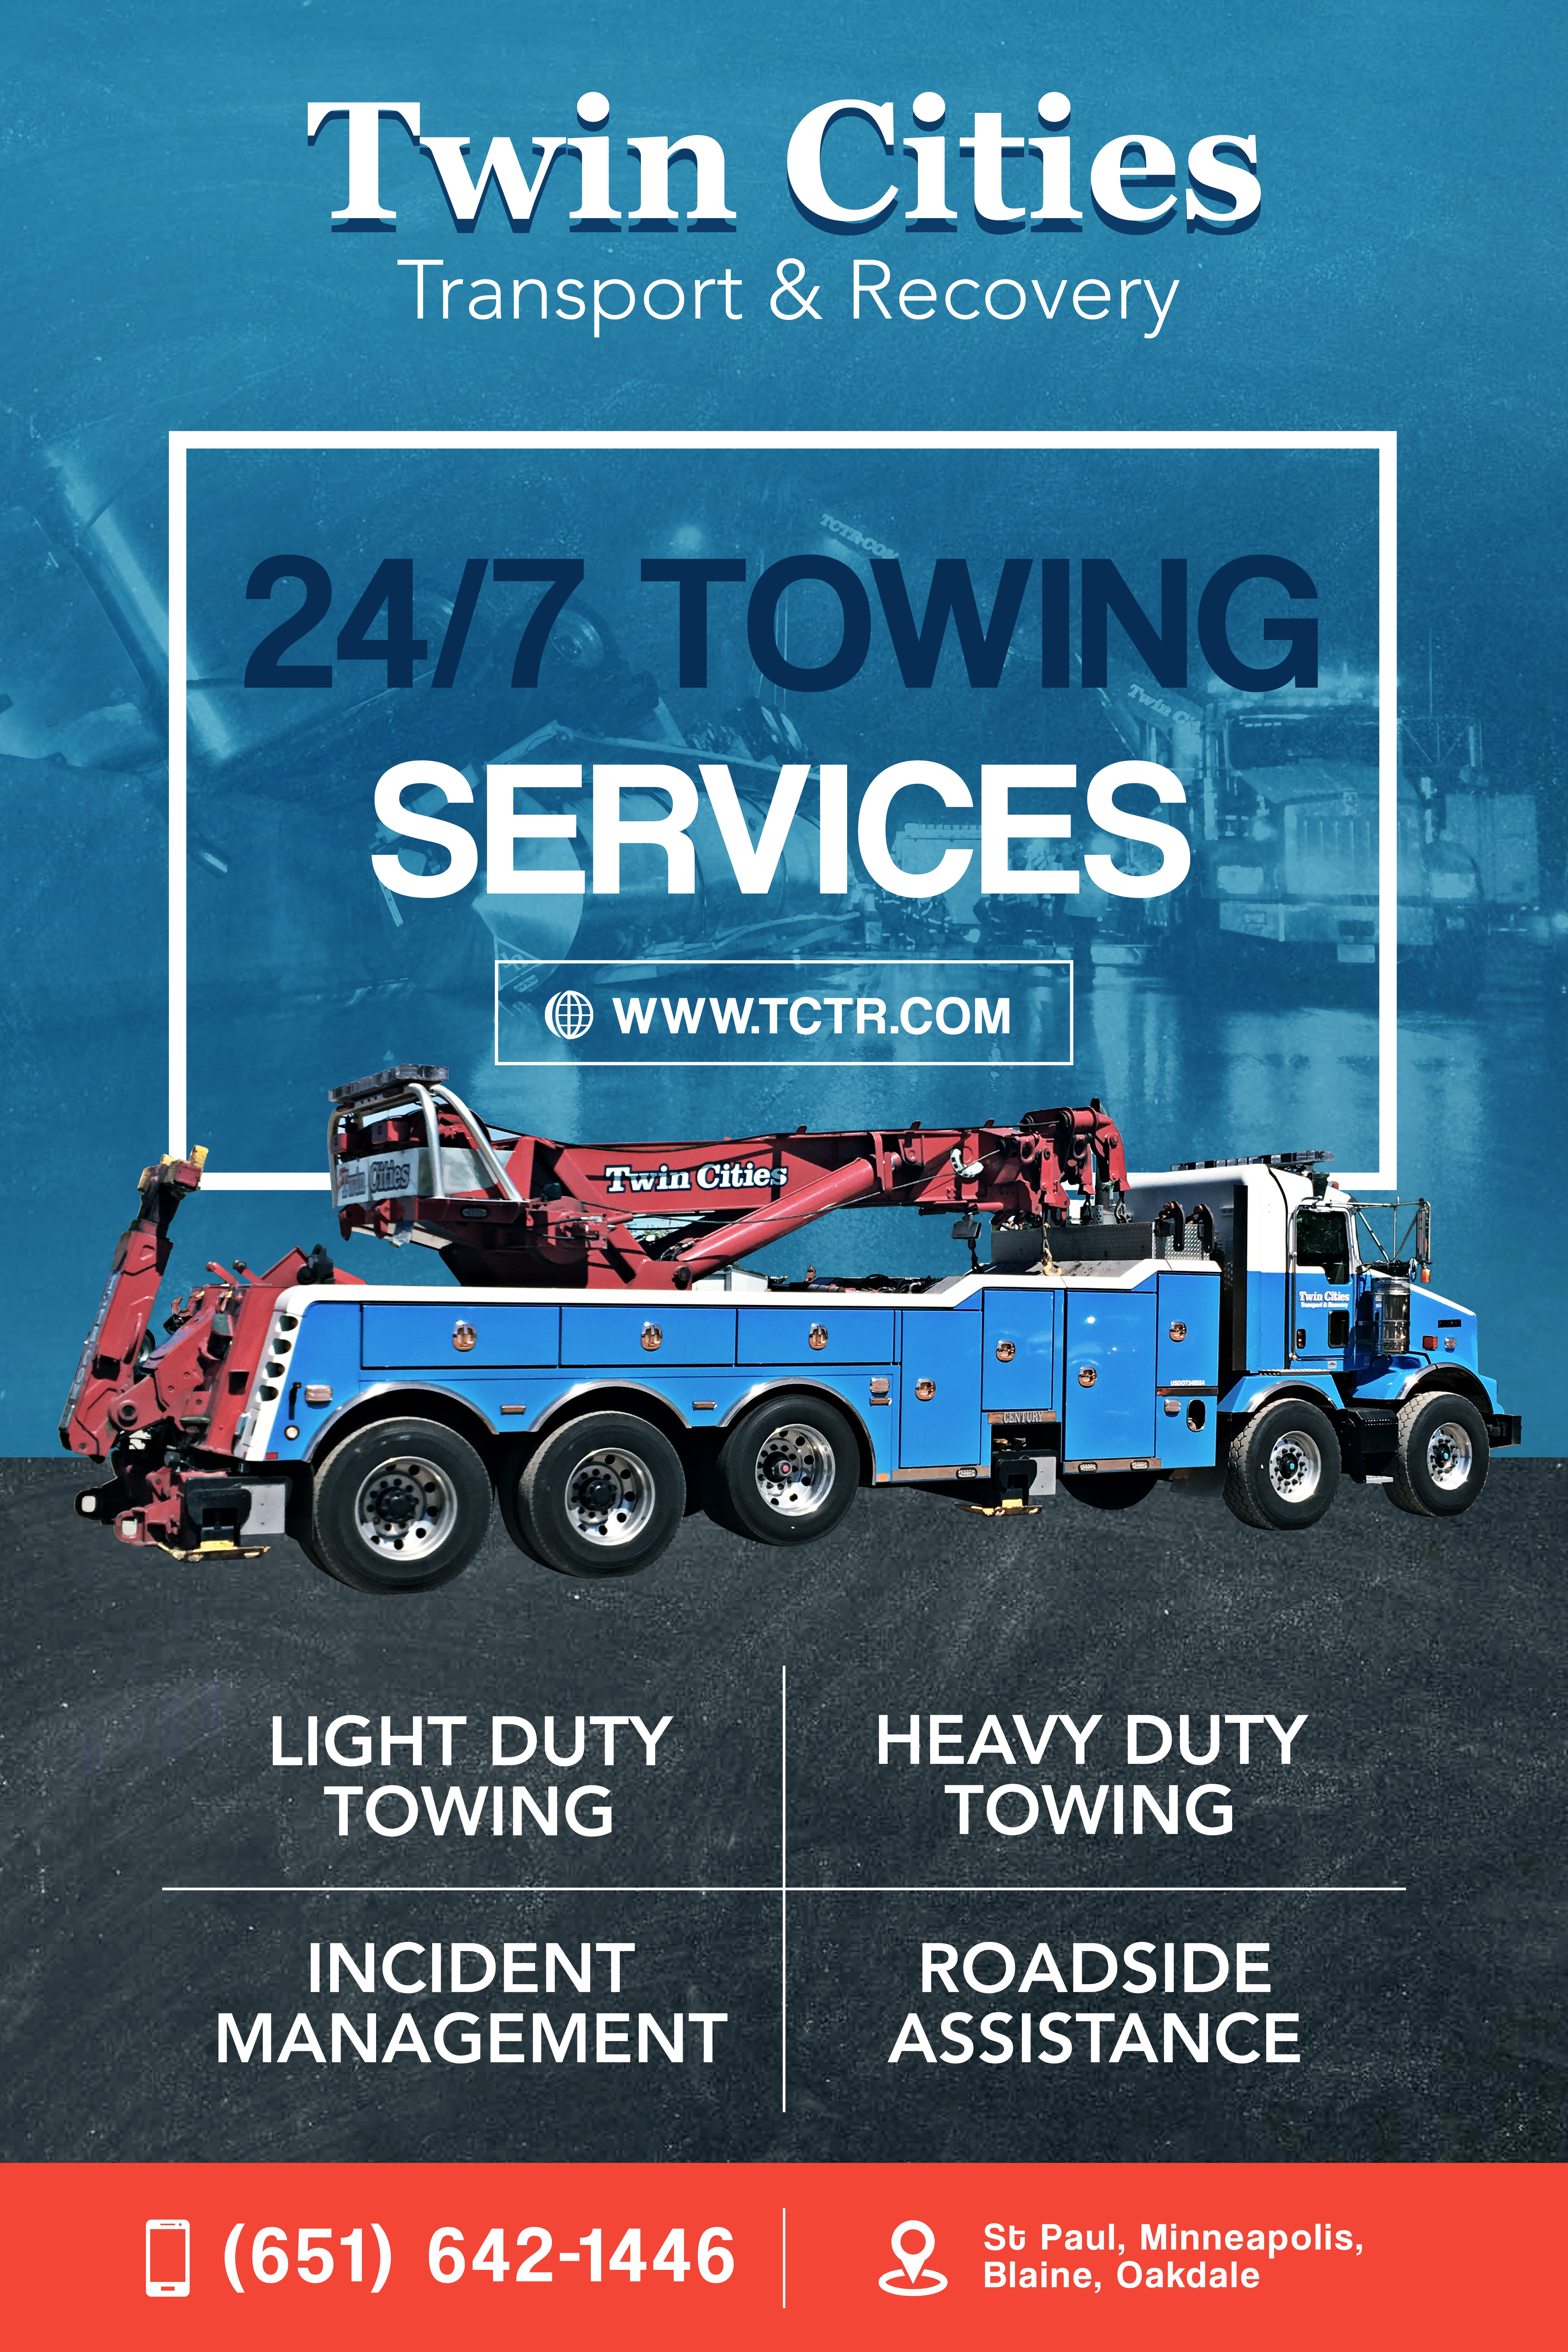 Design a professional towing and recovery poster for TCTR!